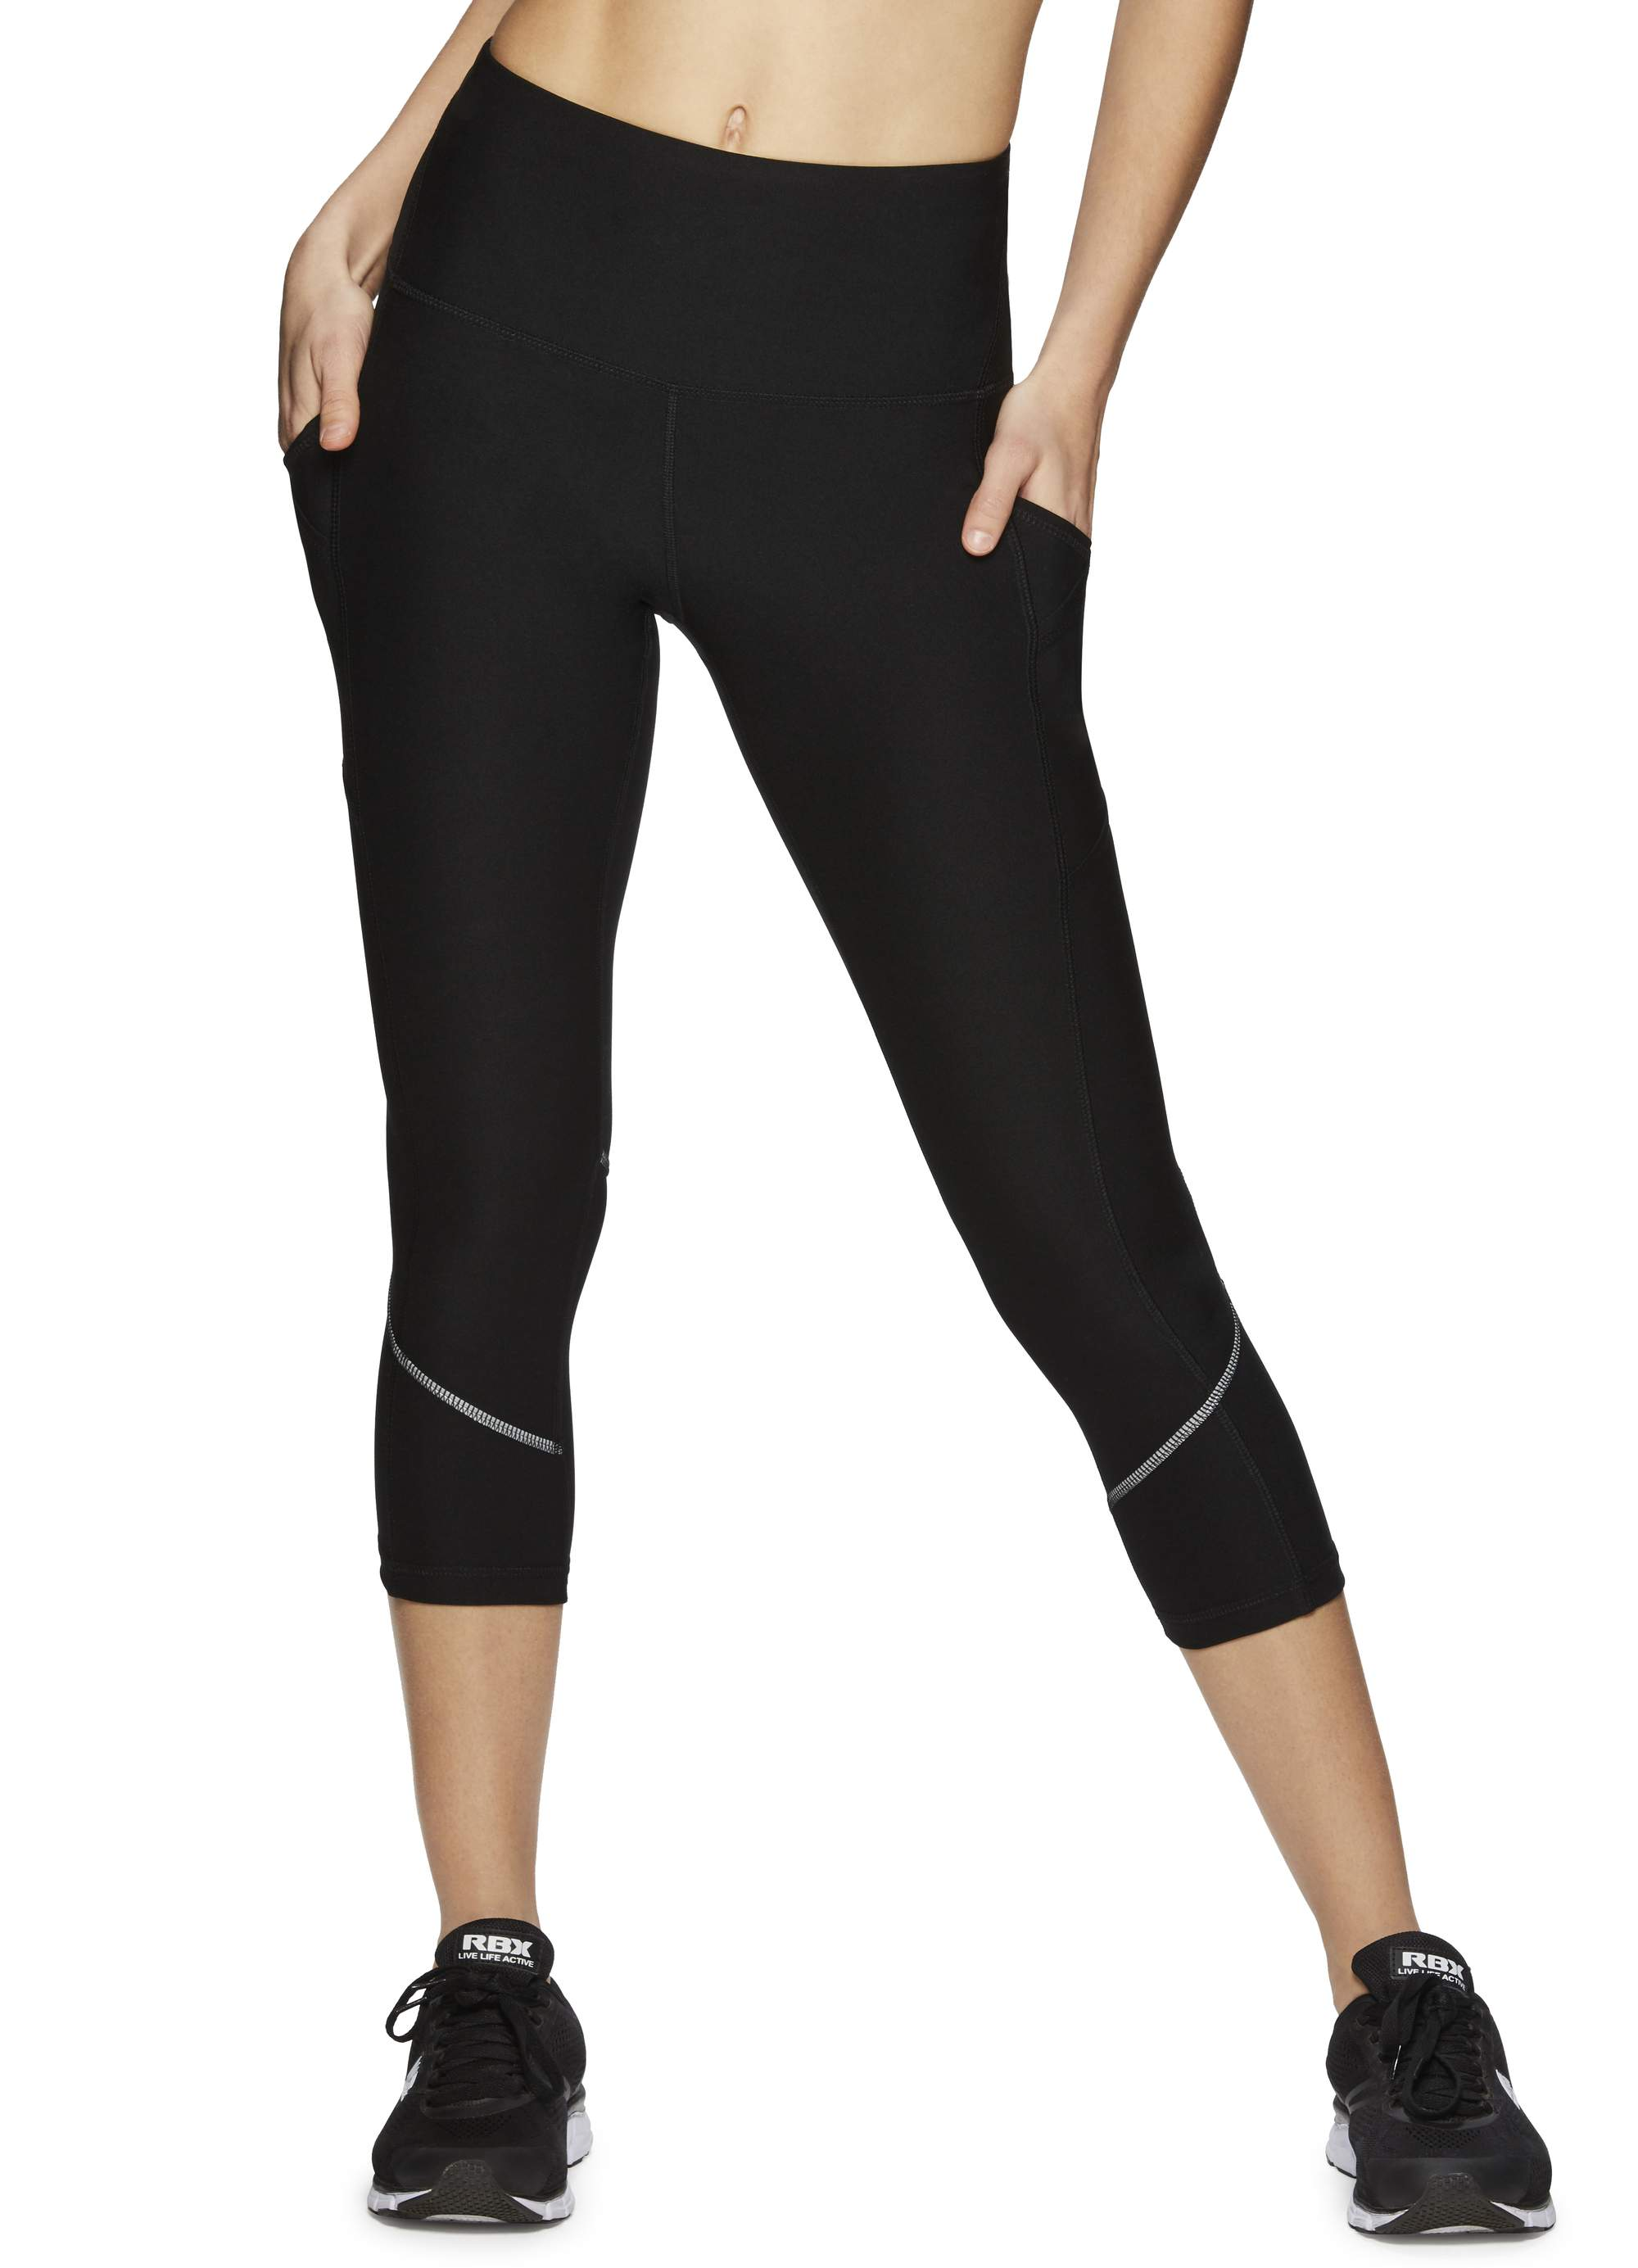 Women's Active P/S Missy Capri Length Legging W/Lacer Cutout